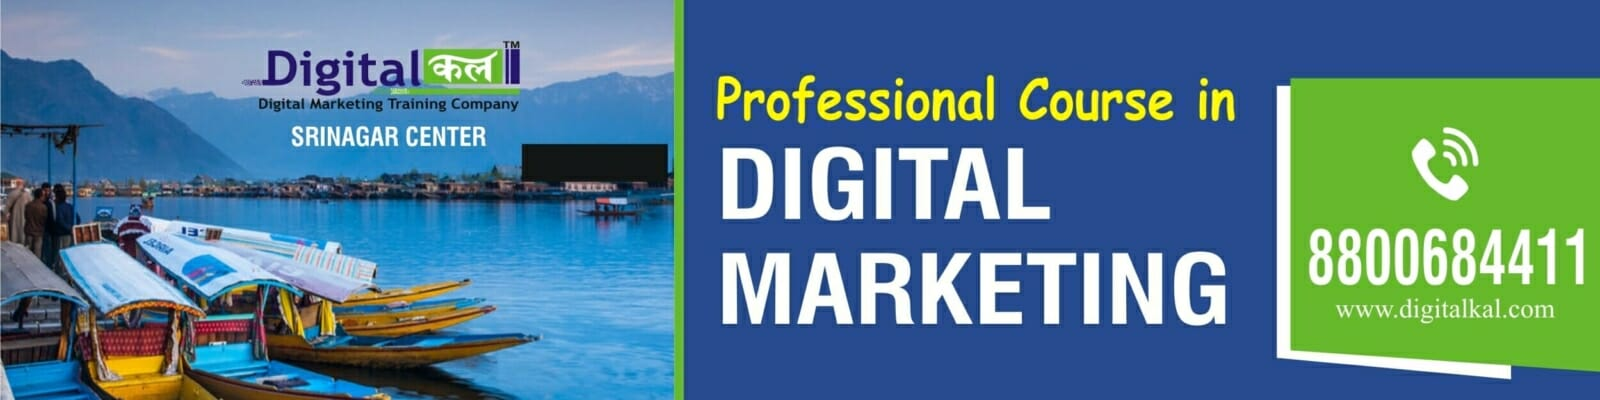 Digital Marketing Course Srinagar